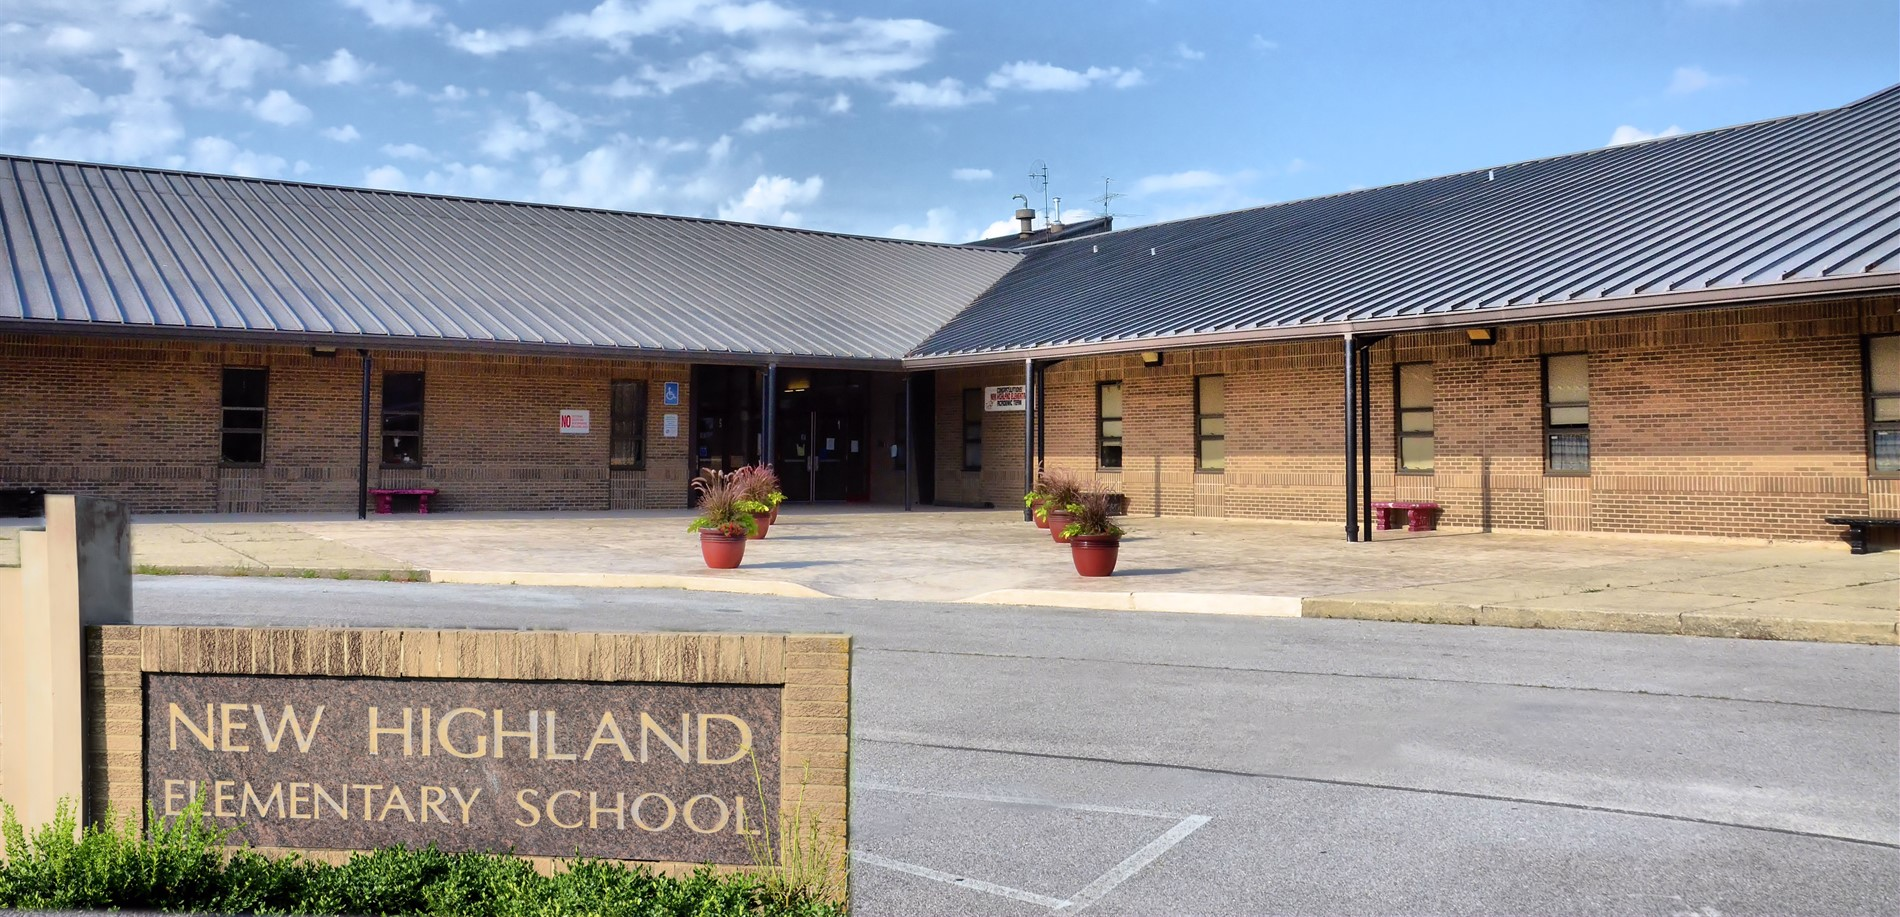 New Highland Elementary School